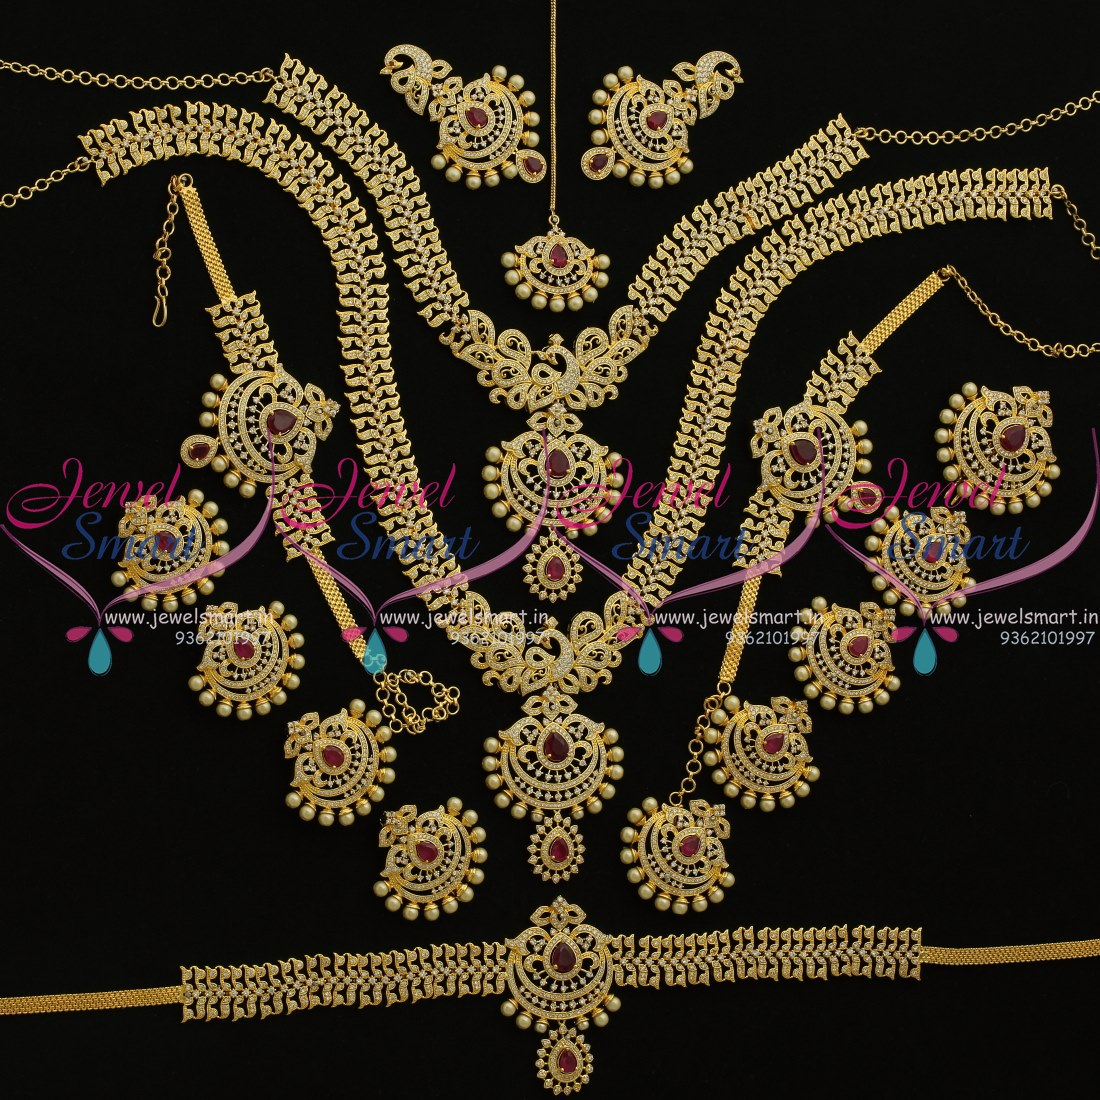 BR9067 Ruby White Gold Plated Peacock Grand Design Full Bridal Wedding Jewellery Set